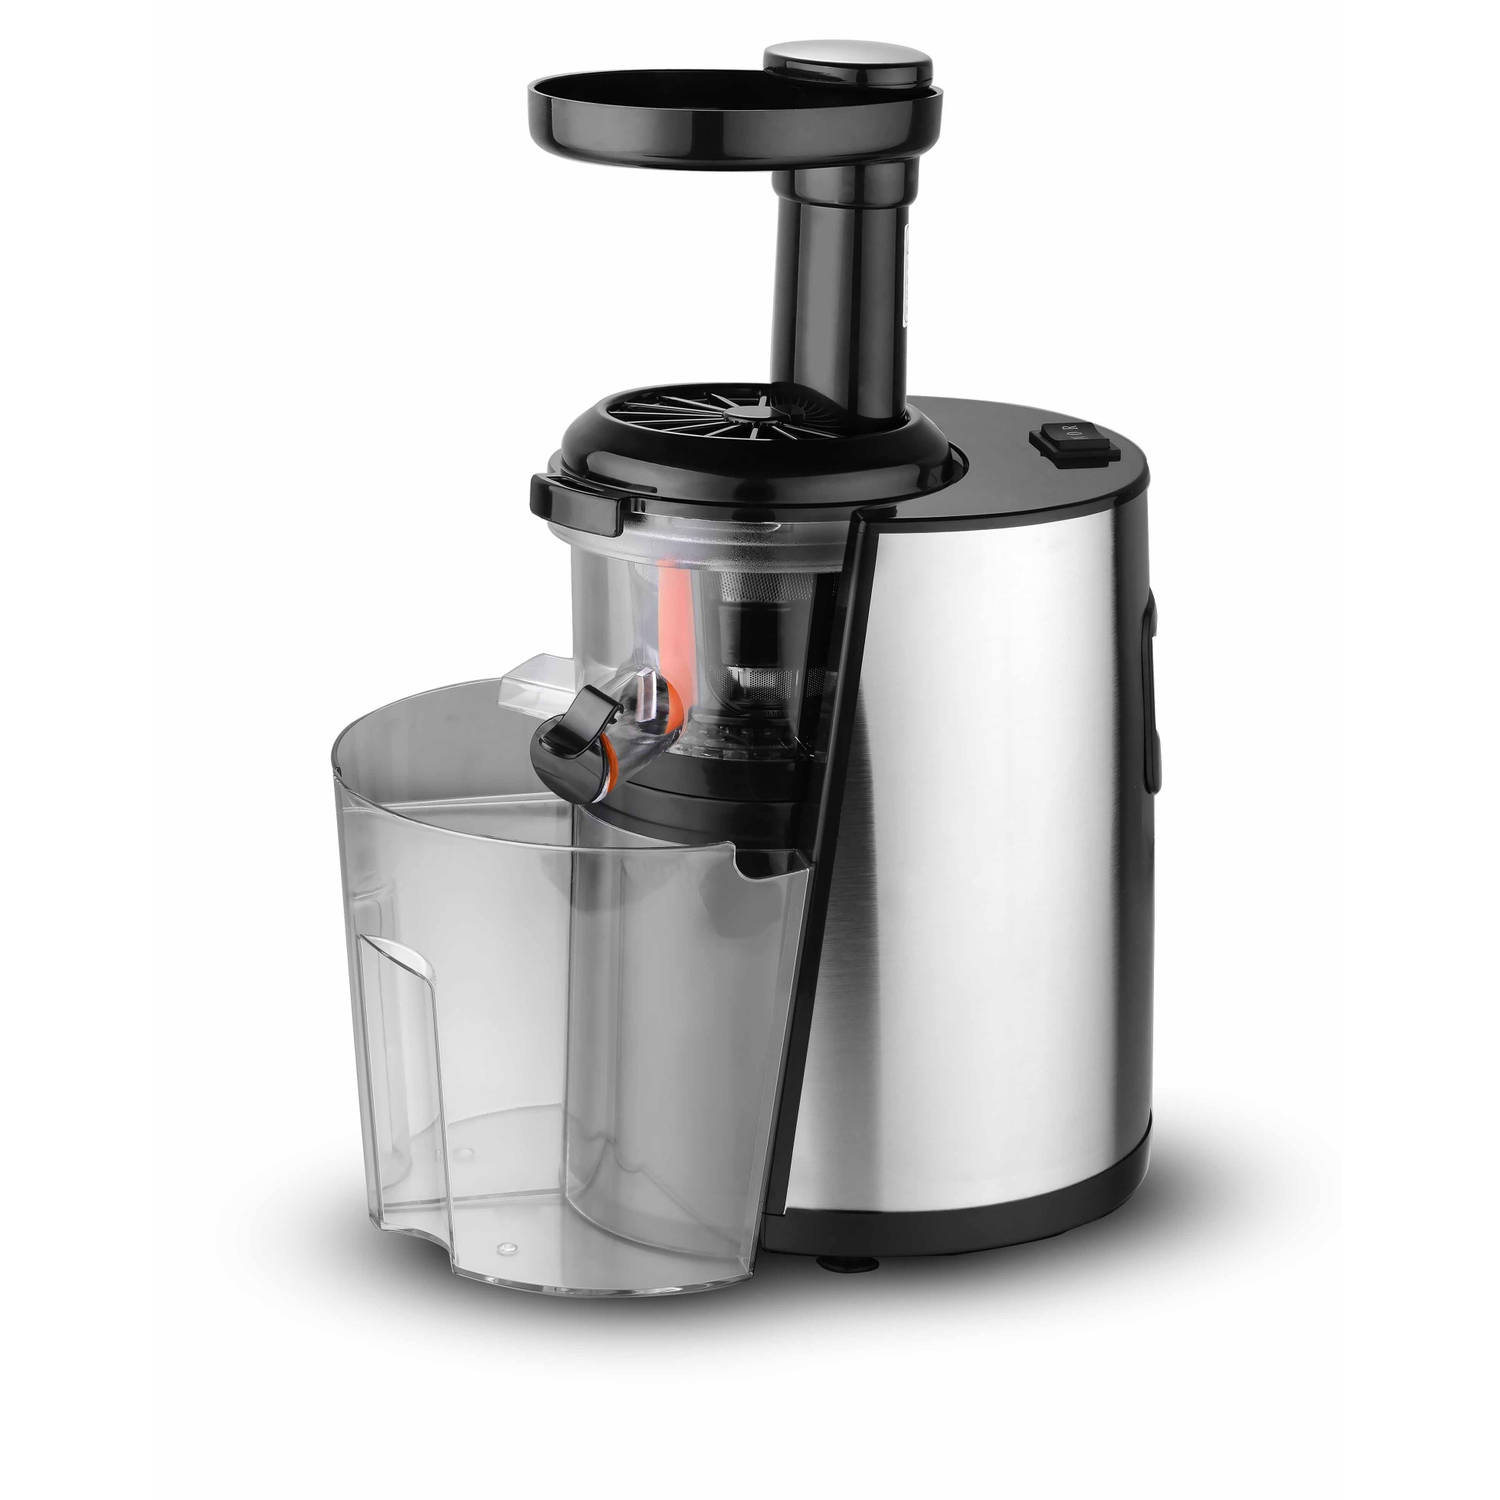 Camry CR 4118 slowjuicer